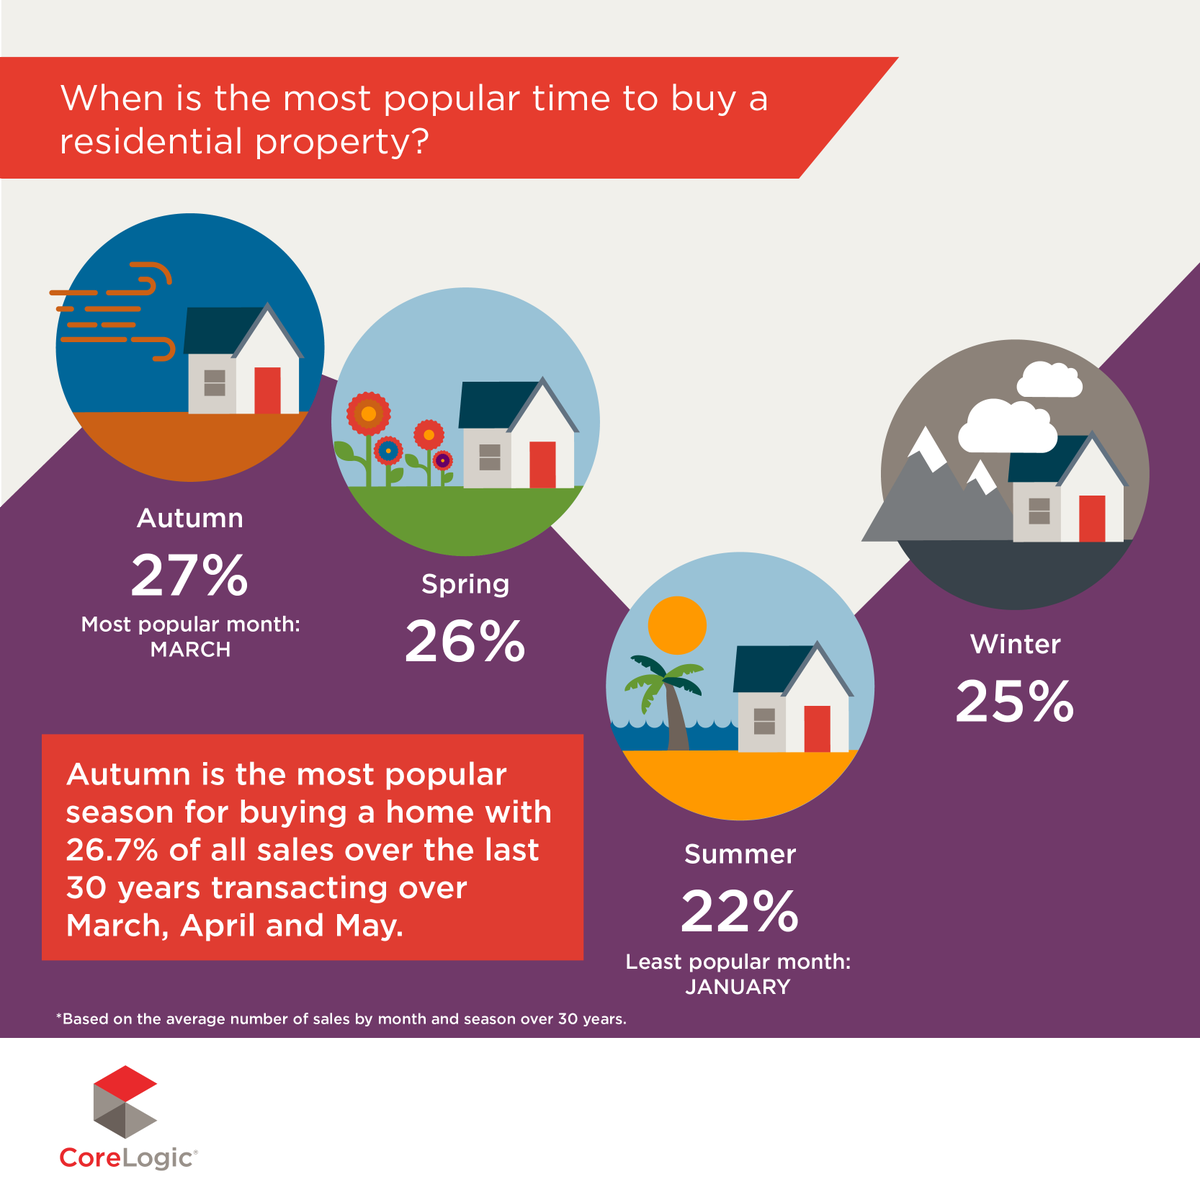 Which season do you think is the most popular for buying a home? #realestateau #ausproperty https://t.co/pAj5B81KuS